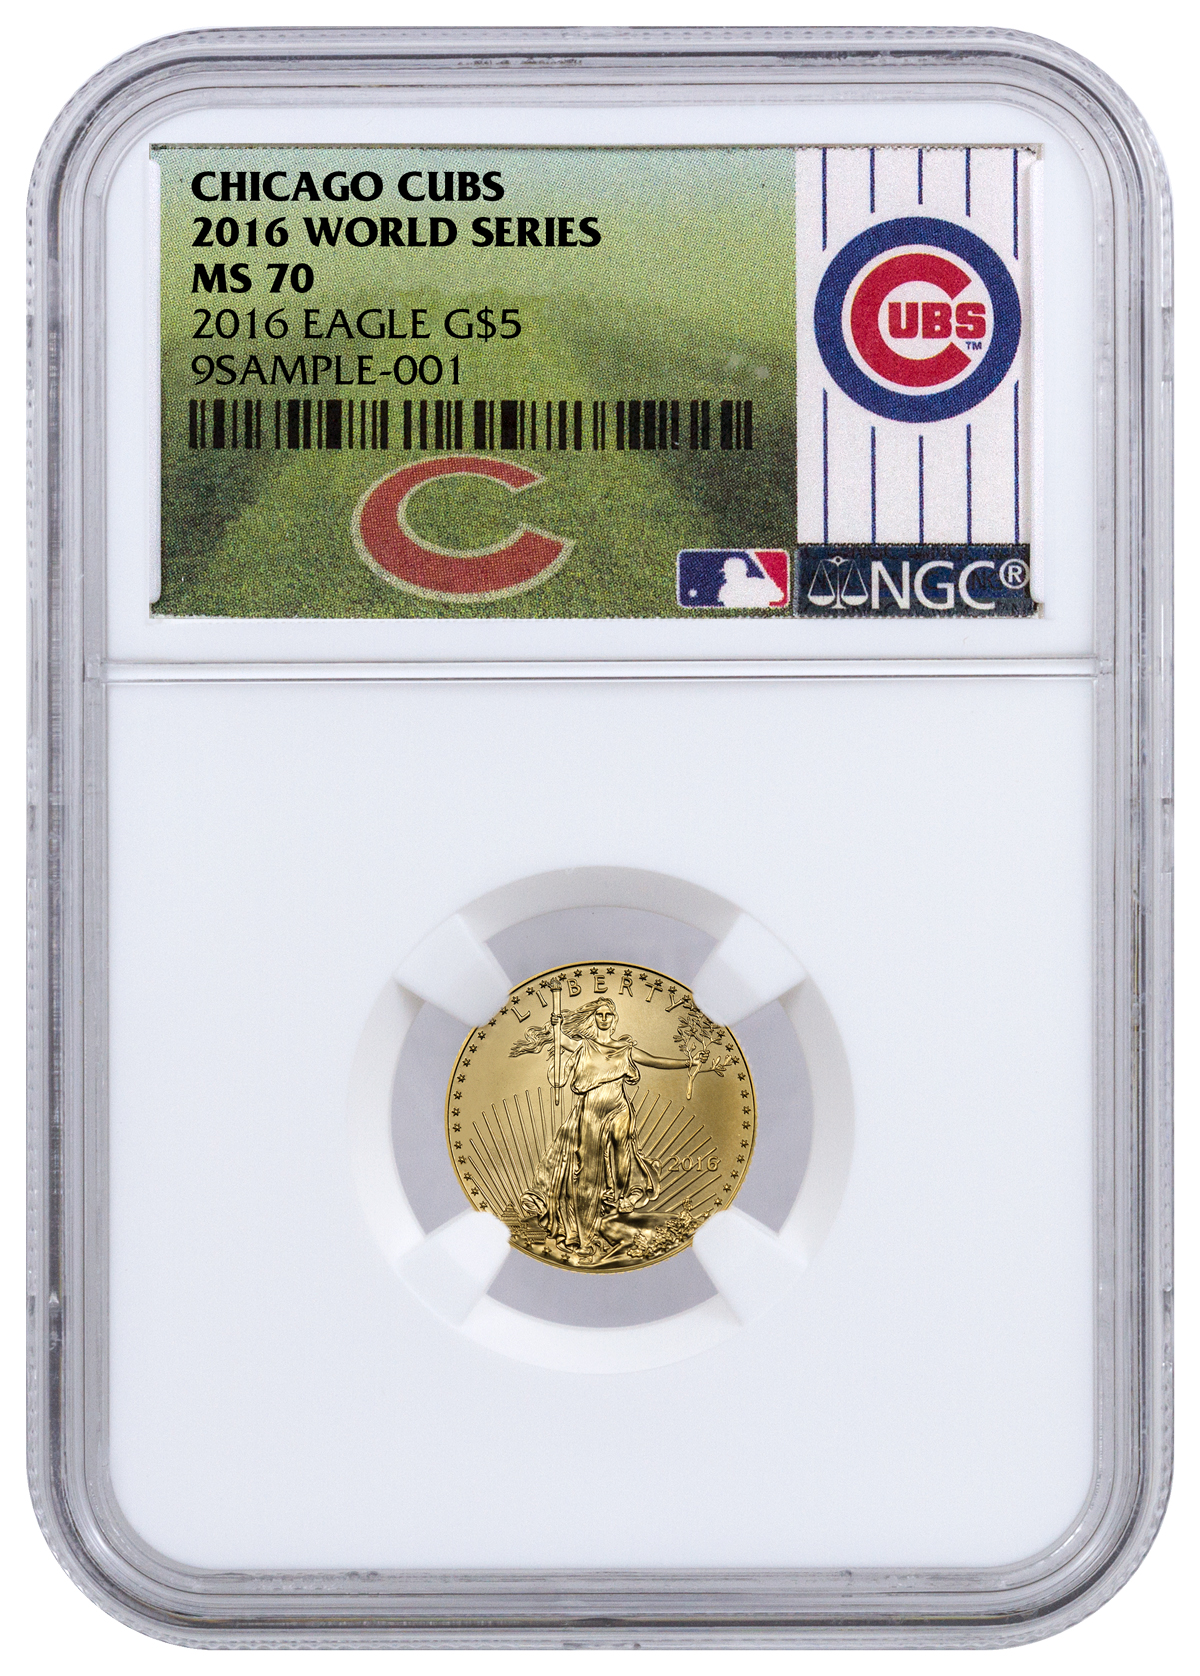 2016 1 10 Oz Gold American Eagle 5 Ngc Ms70 Chicago Cubs